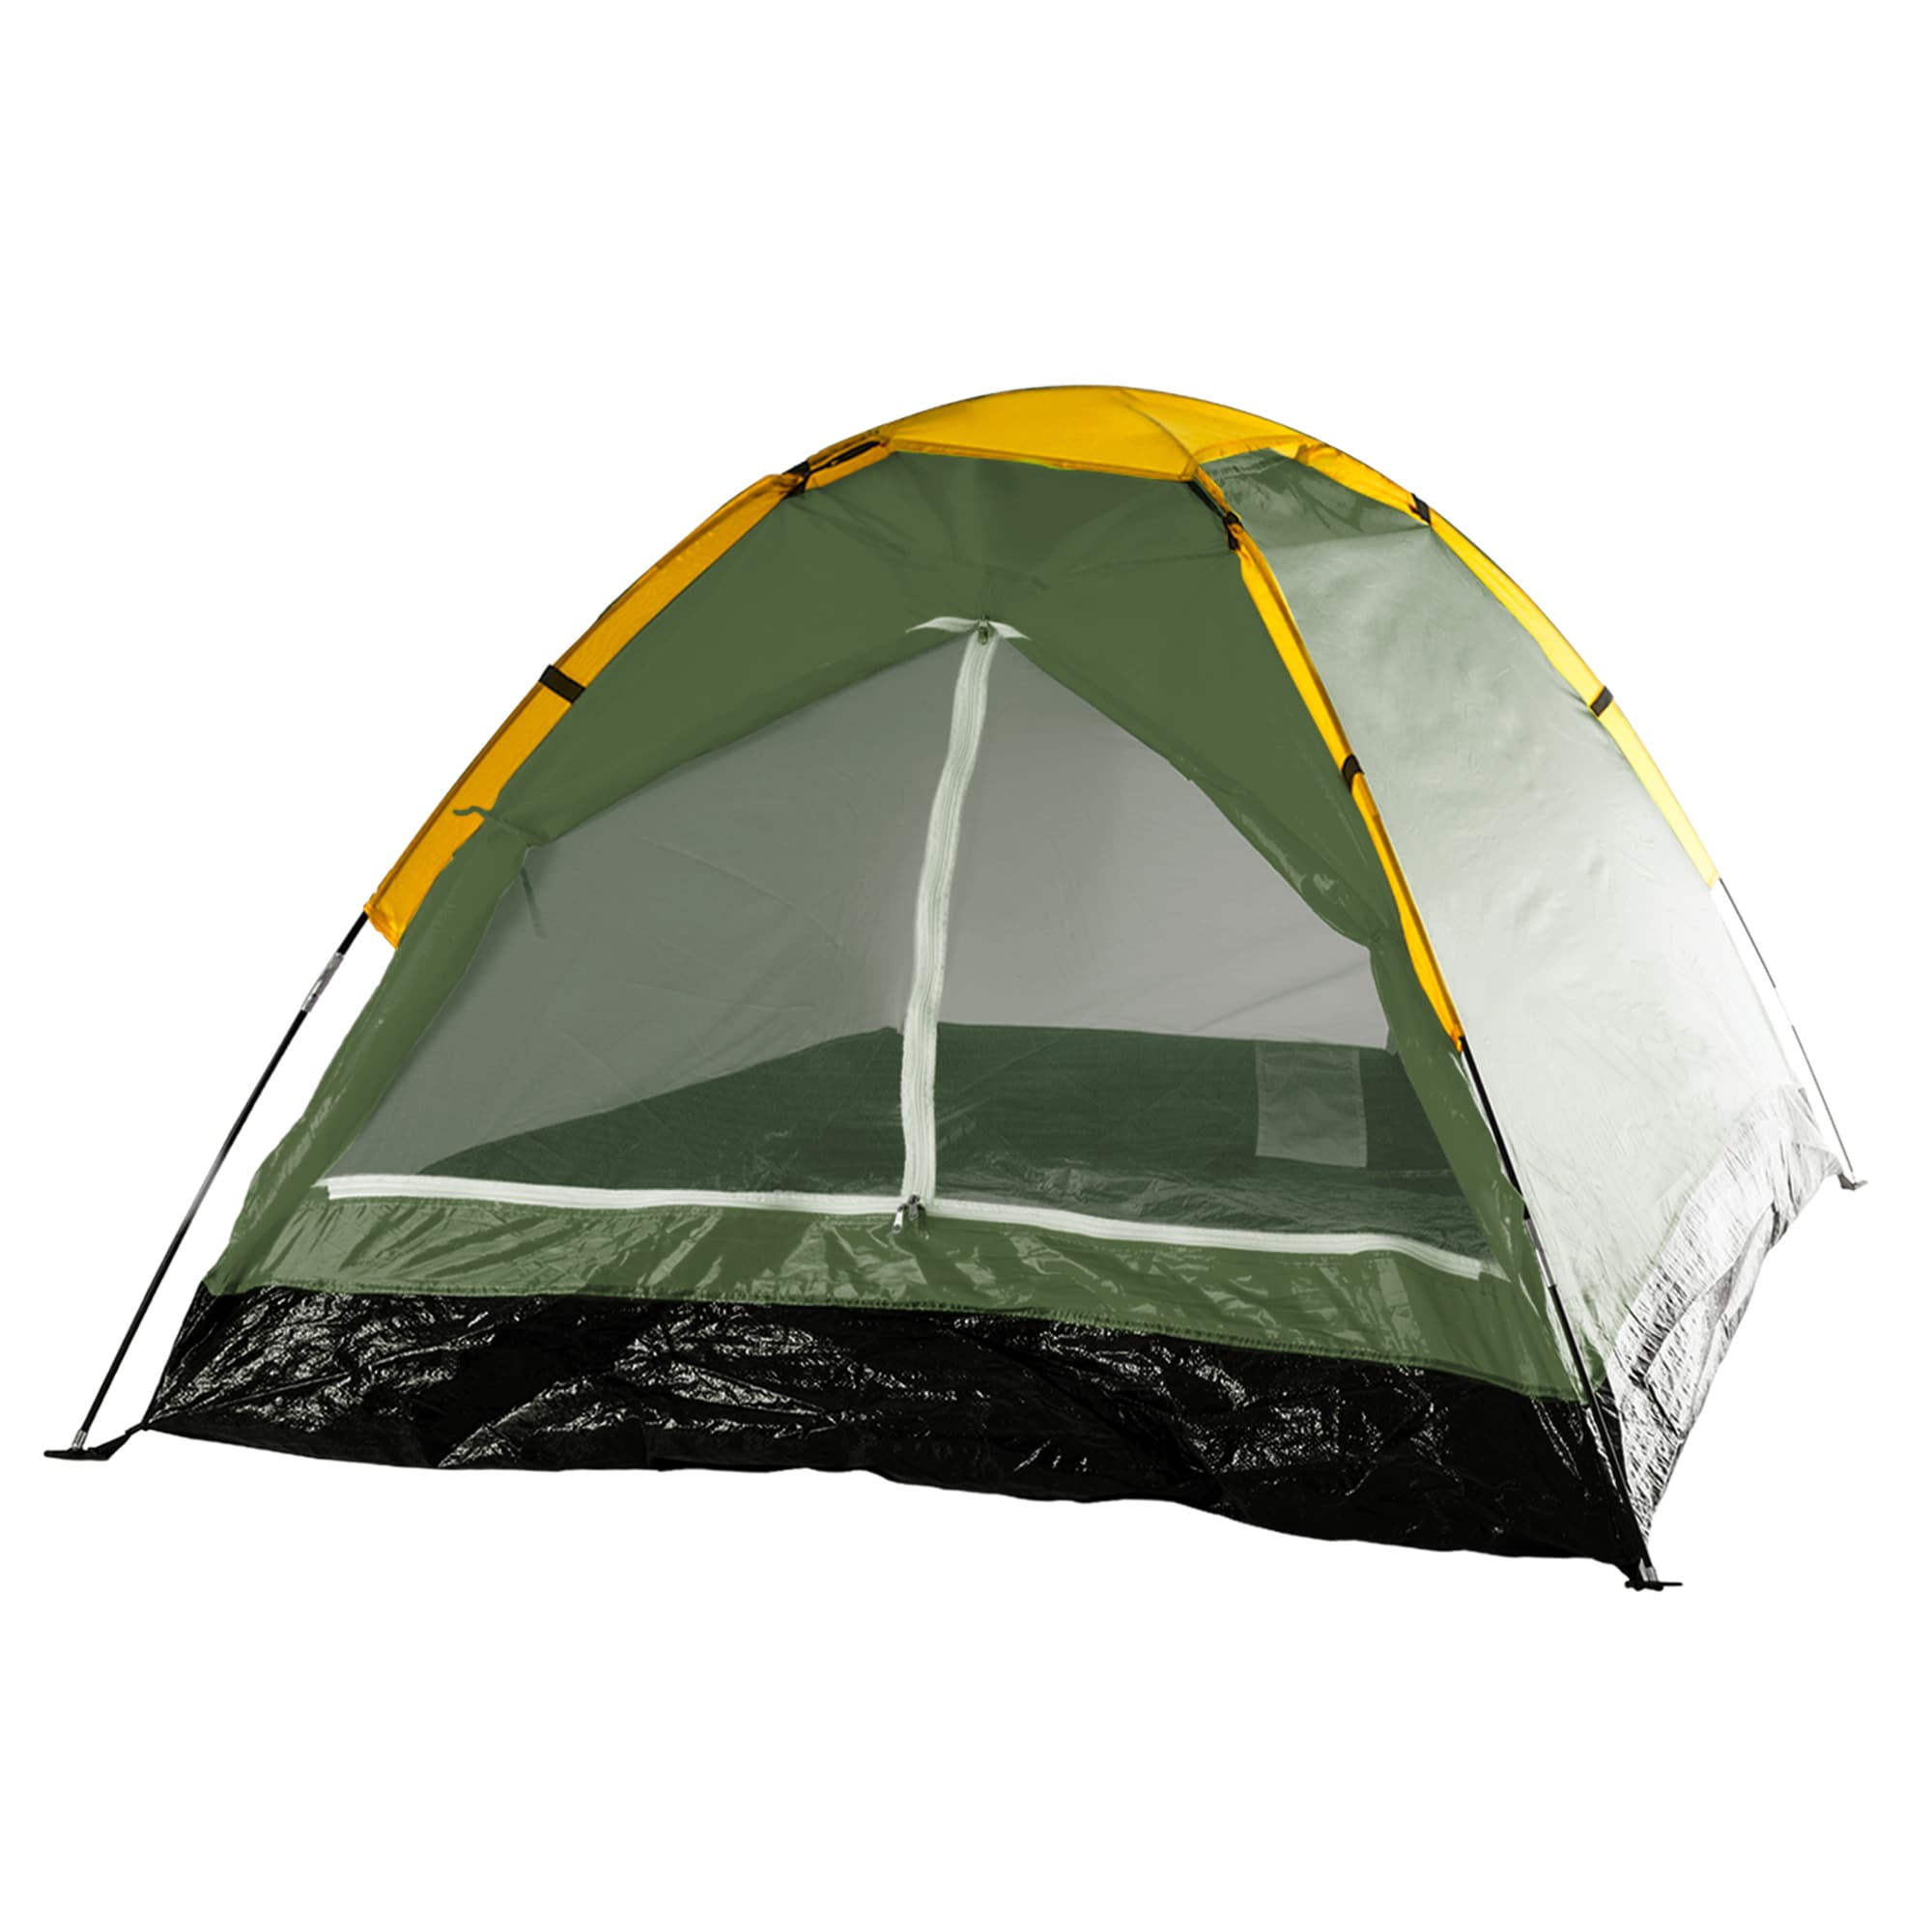 2 Person Tent Dome Tents For Camping With Carry Bag By Wakeman Outdoors